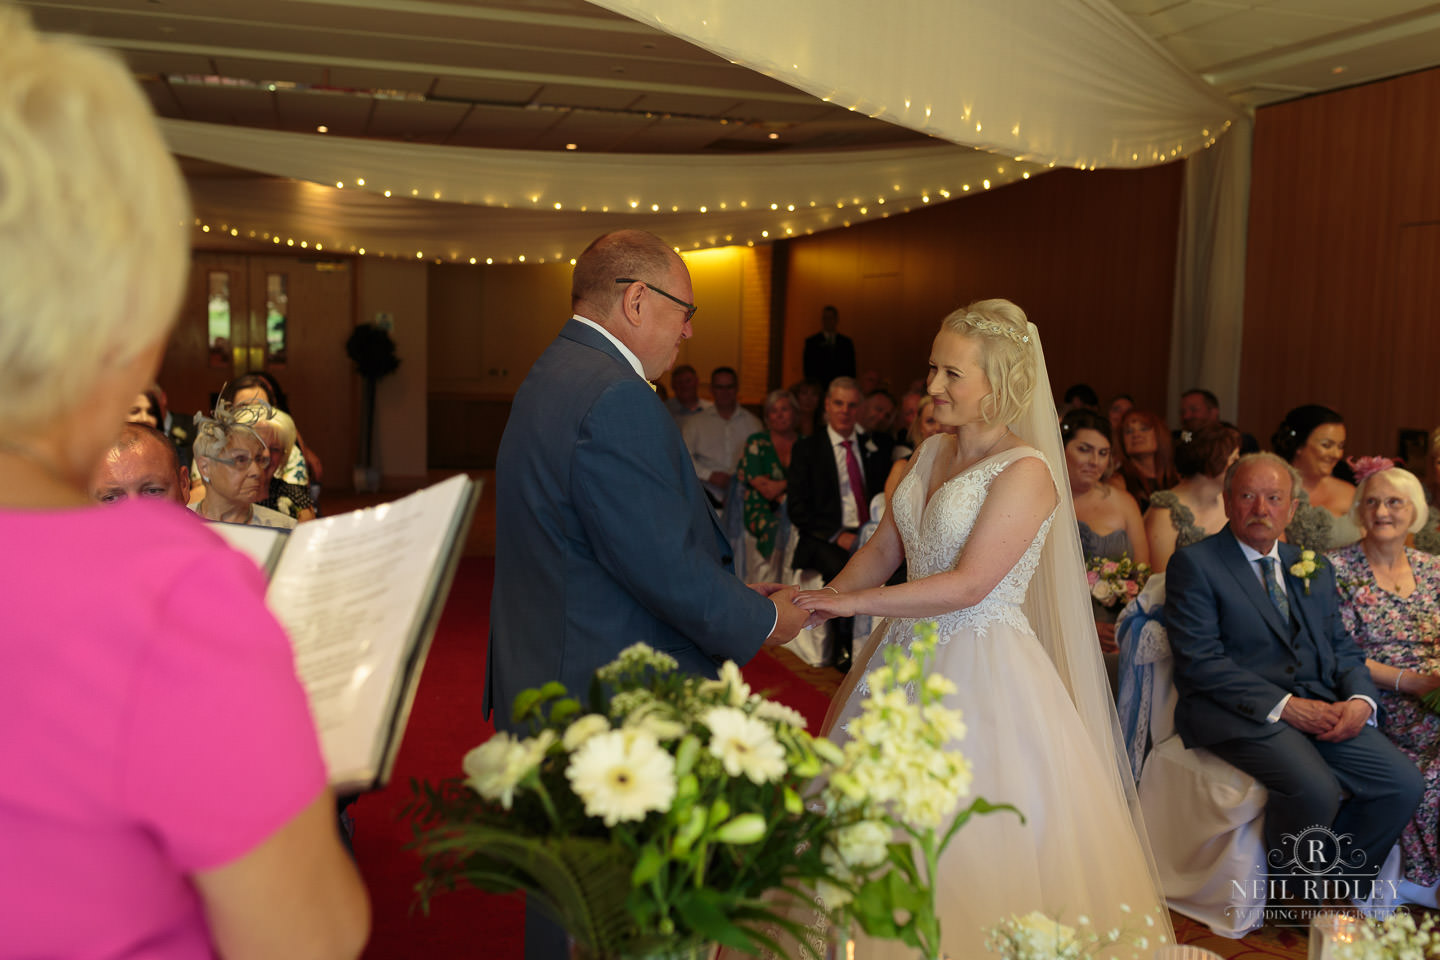 Bride and groom exchange wedding vows at Macdonald Portal Hotel, Tarporley